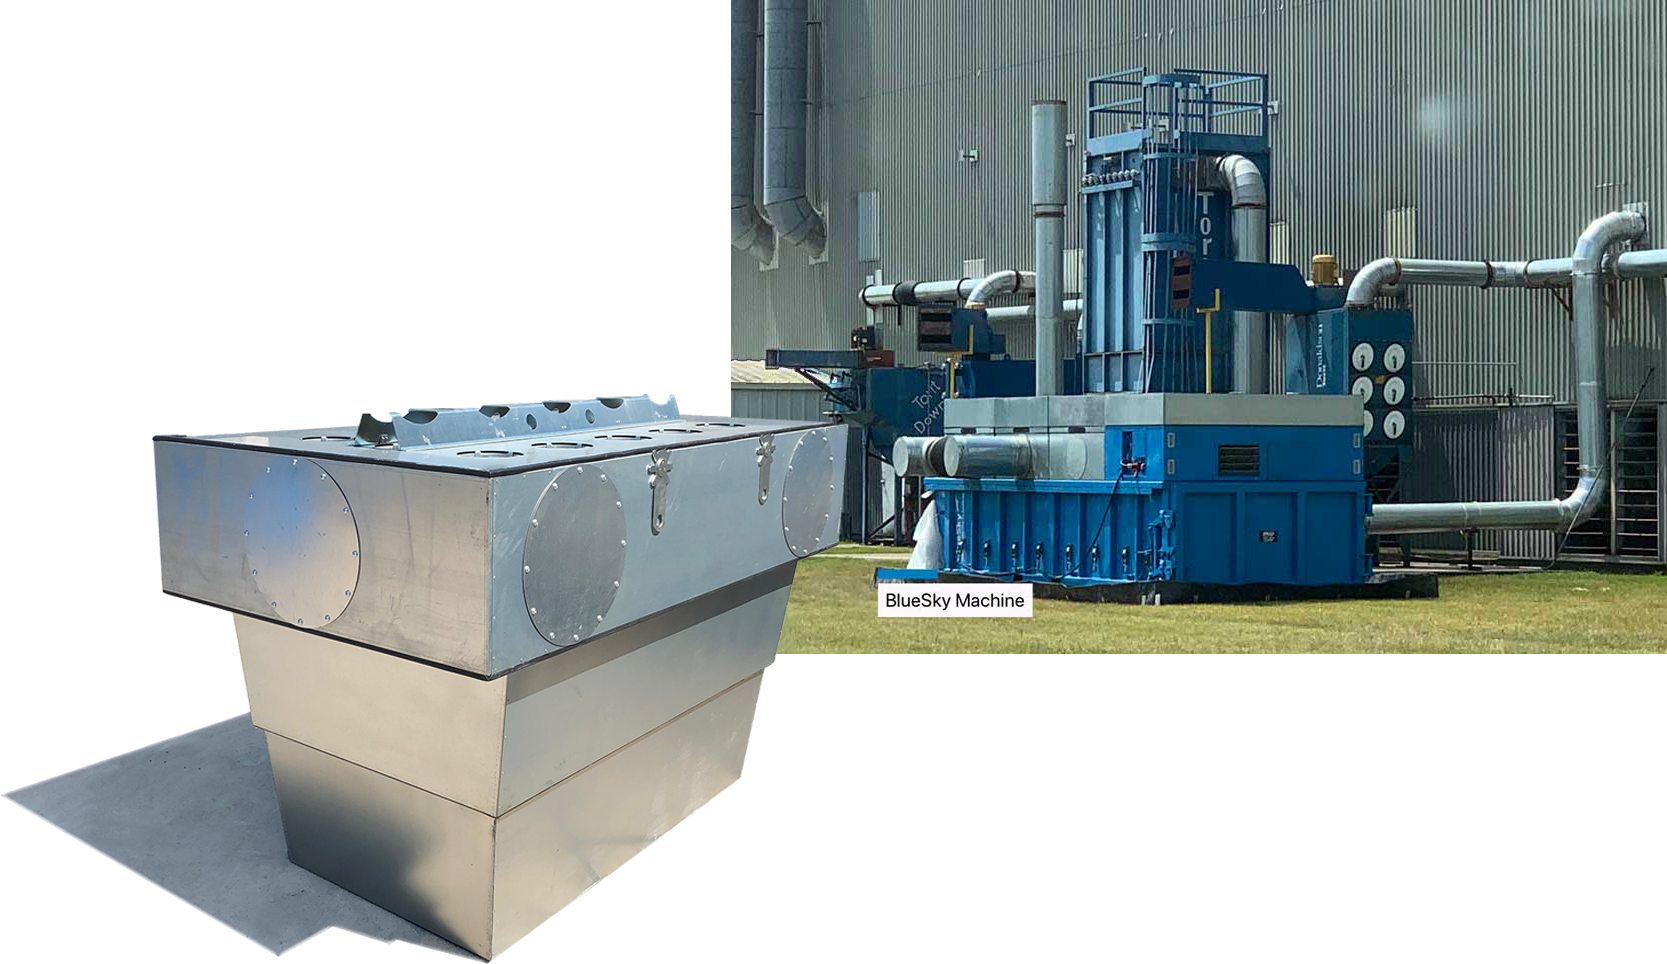 industrial-dust-collector-with-smartbox-BlueSky